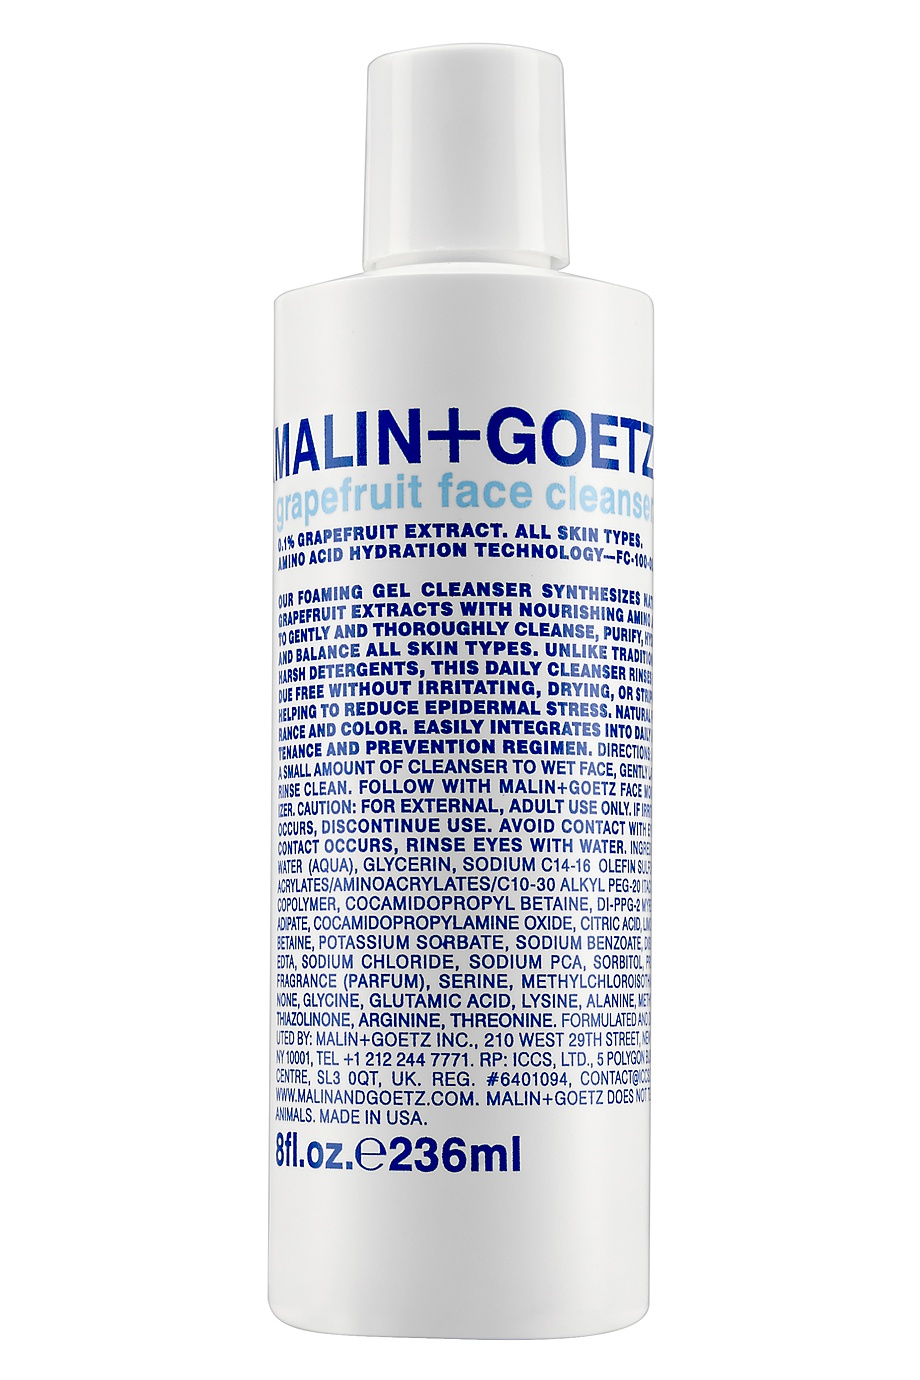 Гель для умывания Grapefruit Face Cleanser 236ml Malin+Goetz (фото)